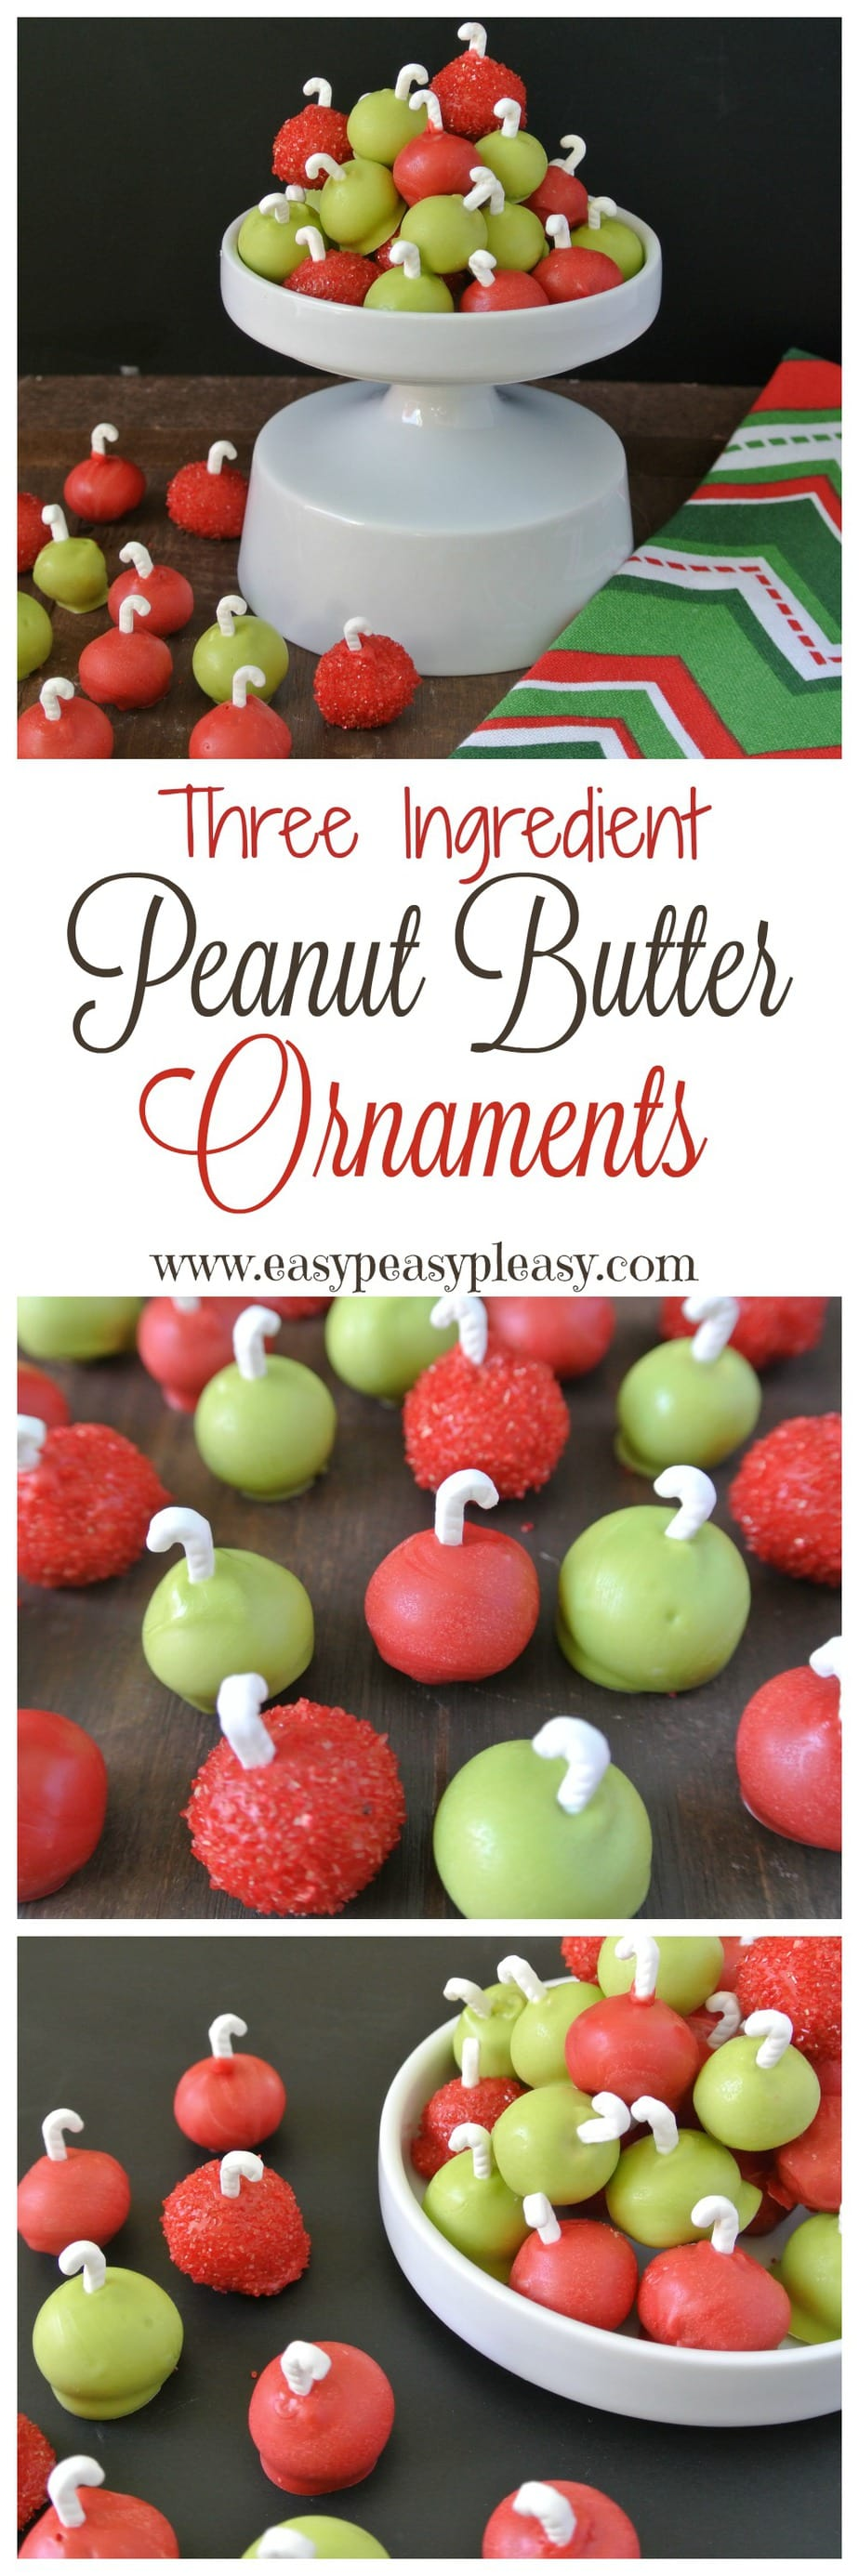 Easy 3 Ingredient Peanut Butter Ornaments are the perfect sweet treat to make for Christmas!